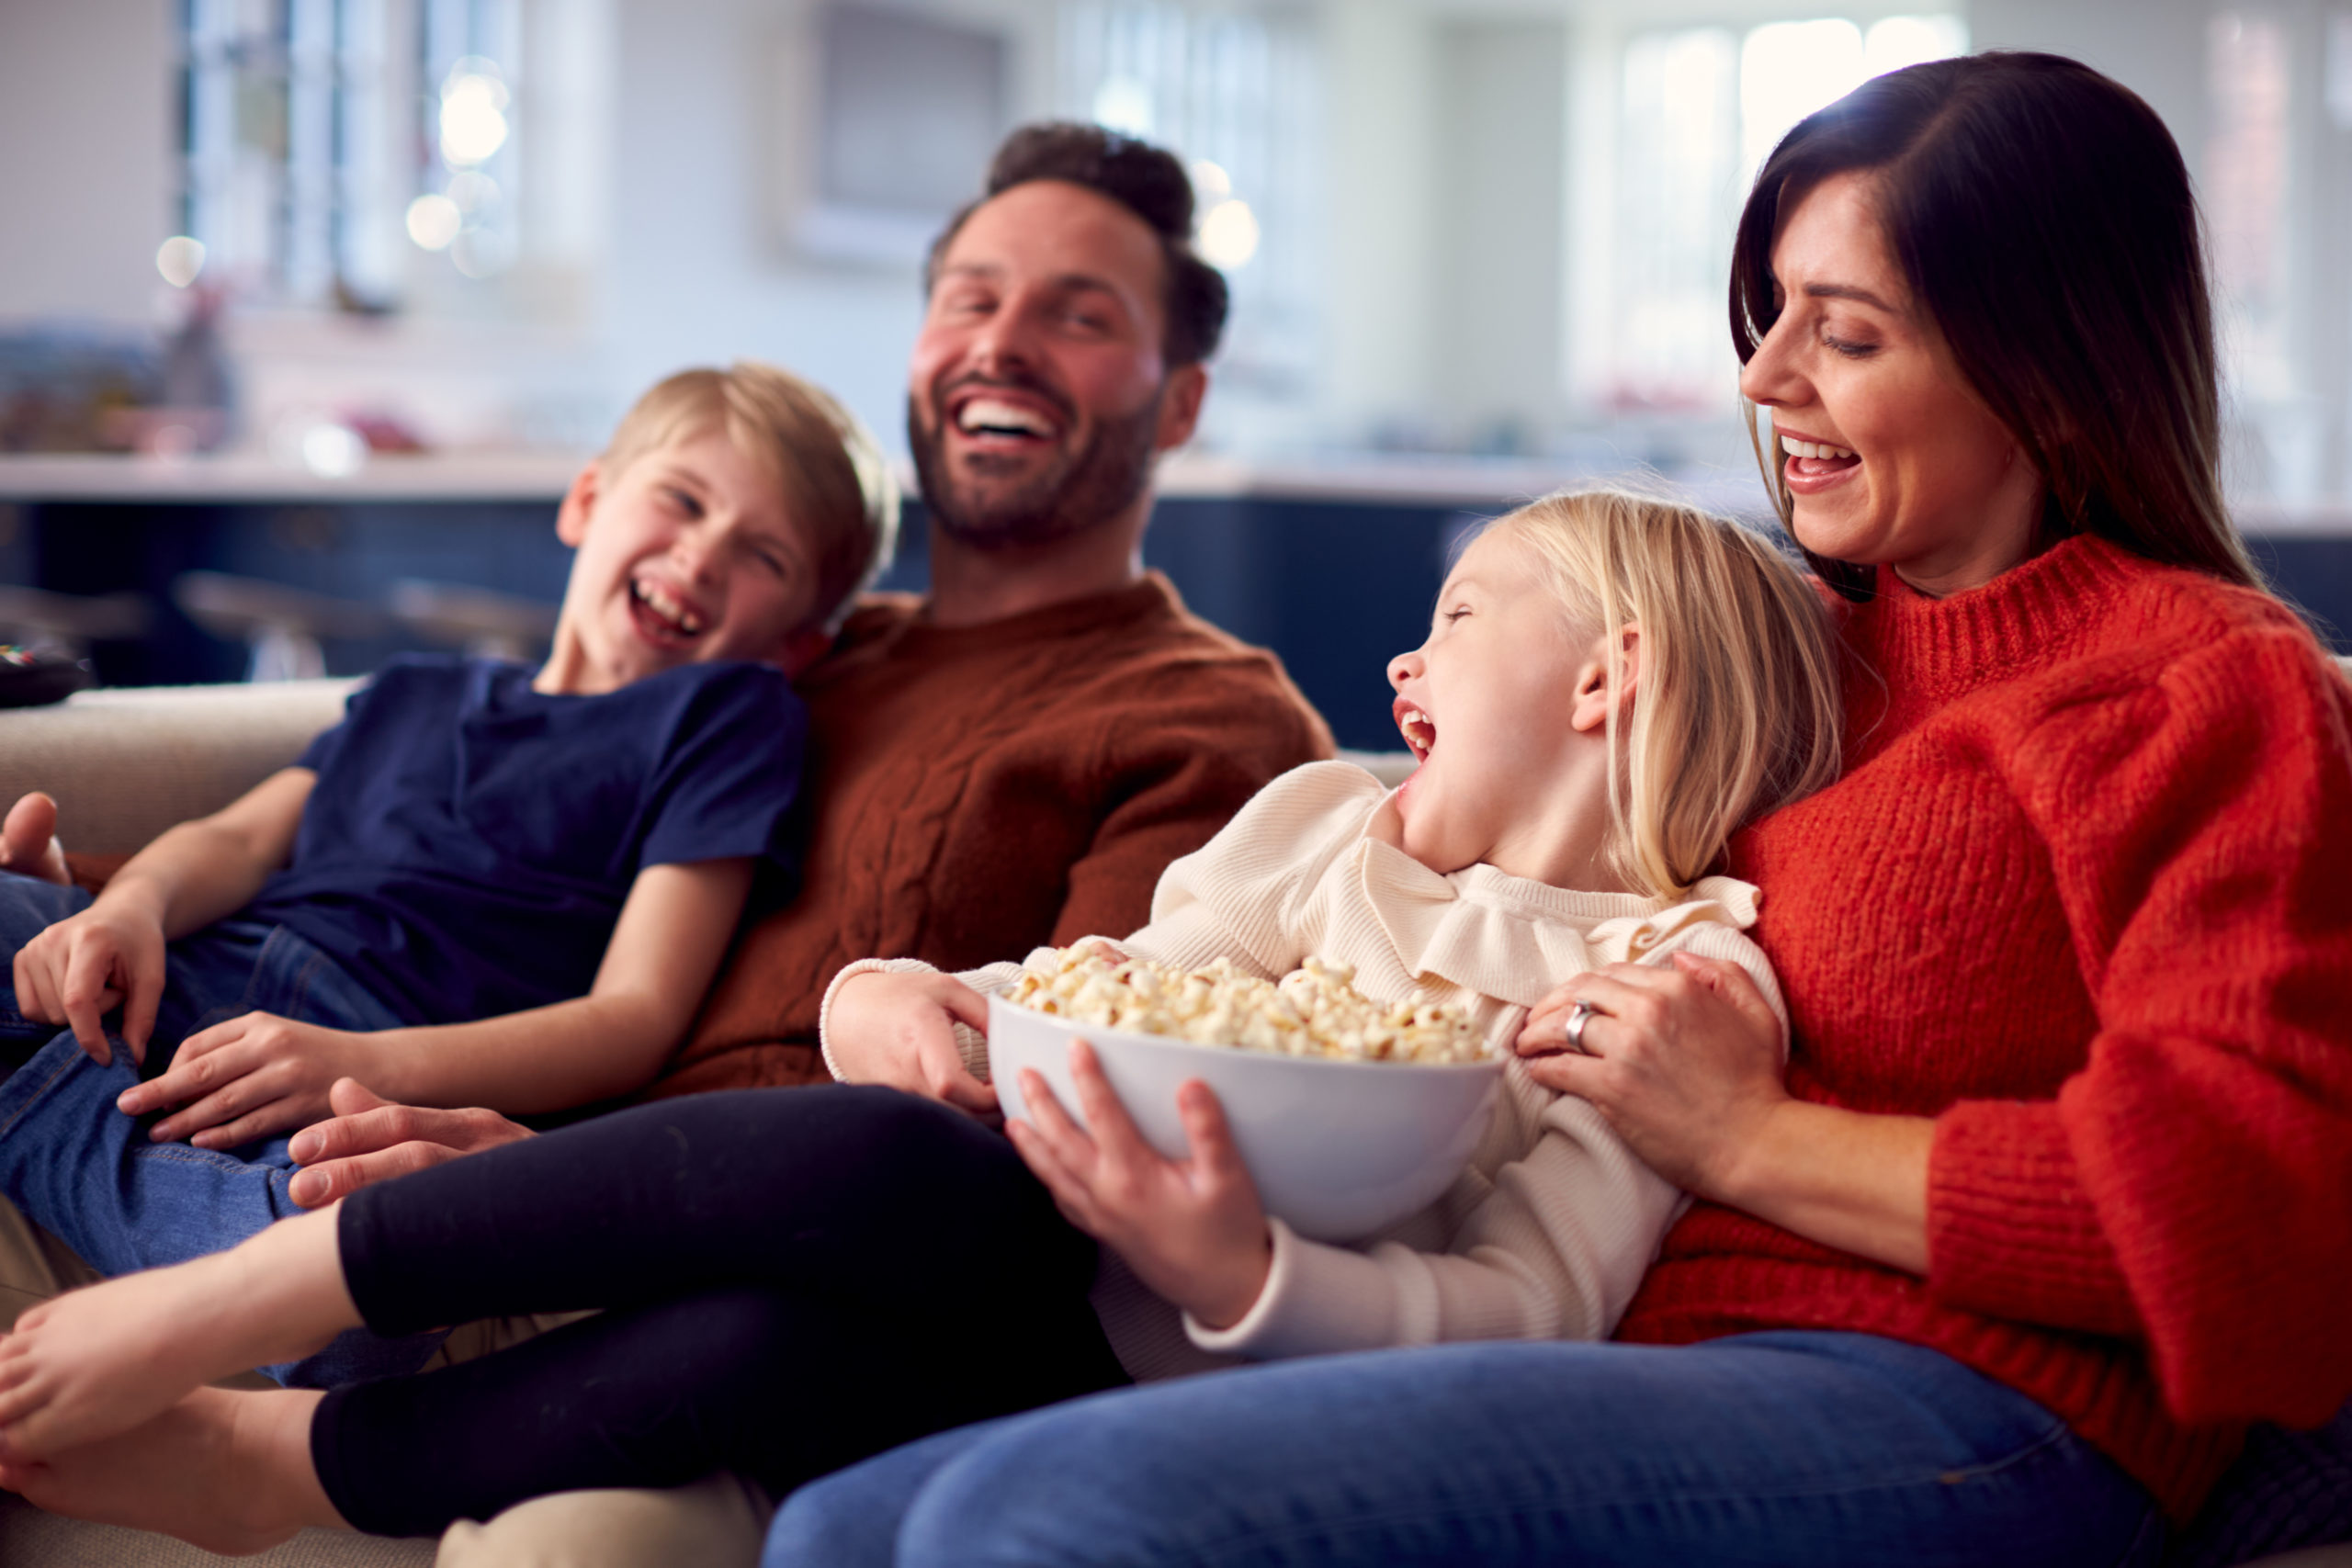 Family Sitting On Sofa With Popcorn Laughing Watching Comedy On TV Together